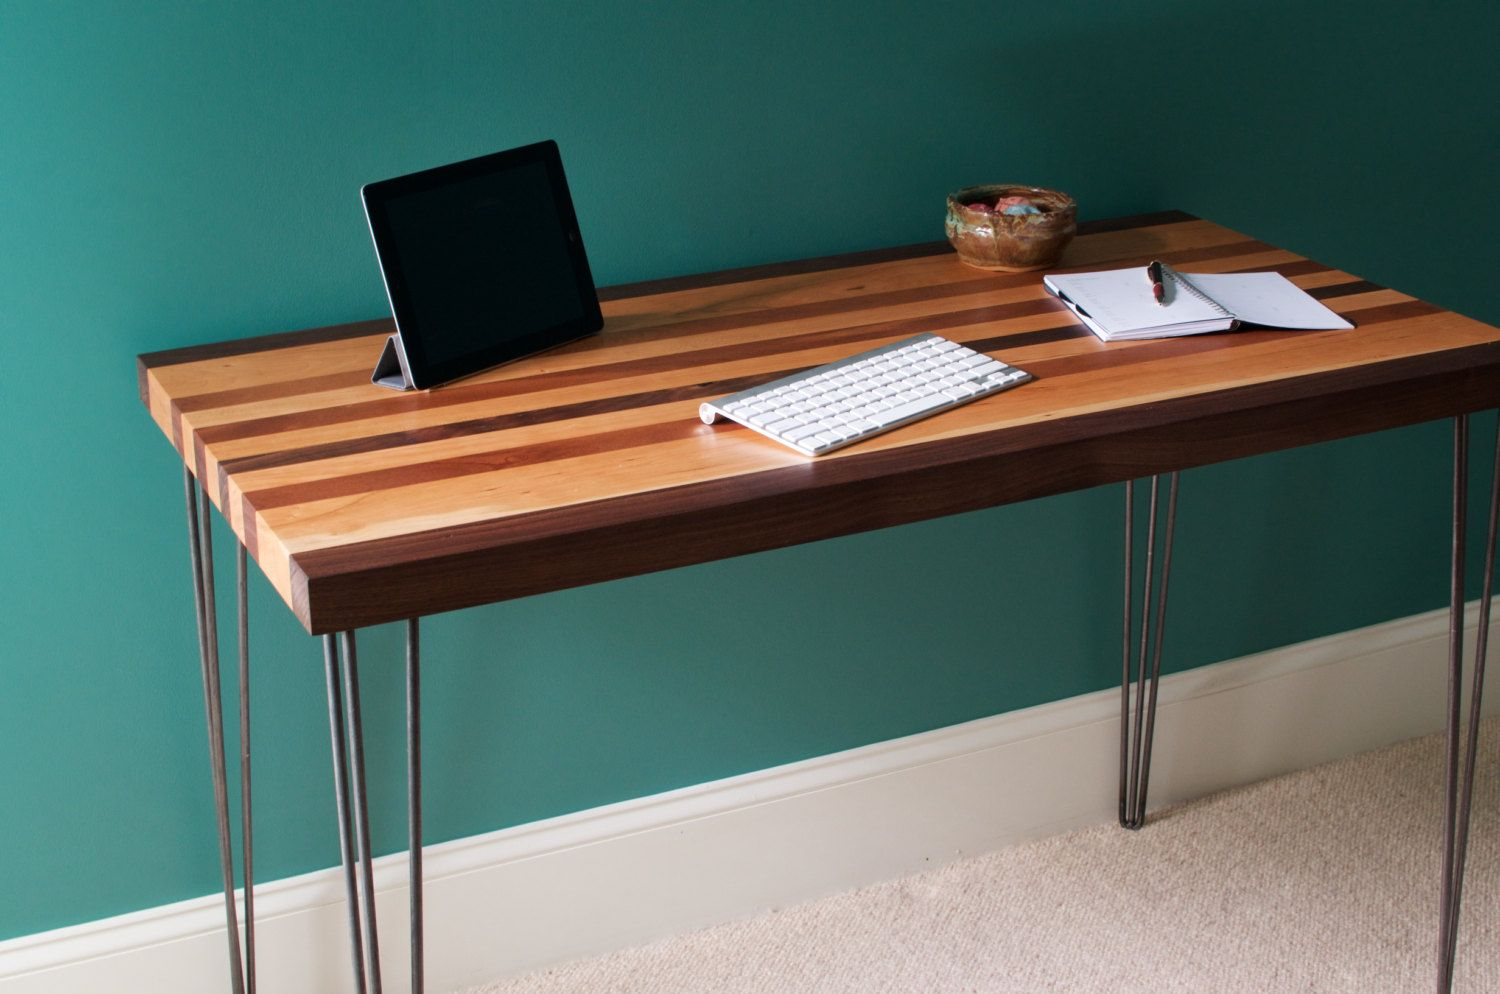 Buy Hand Crafted Mid Century Modern Desk Featuring A Maple